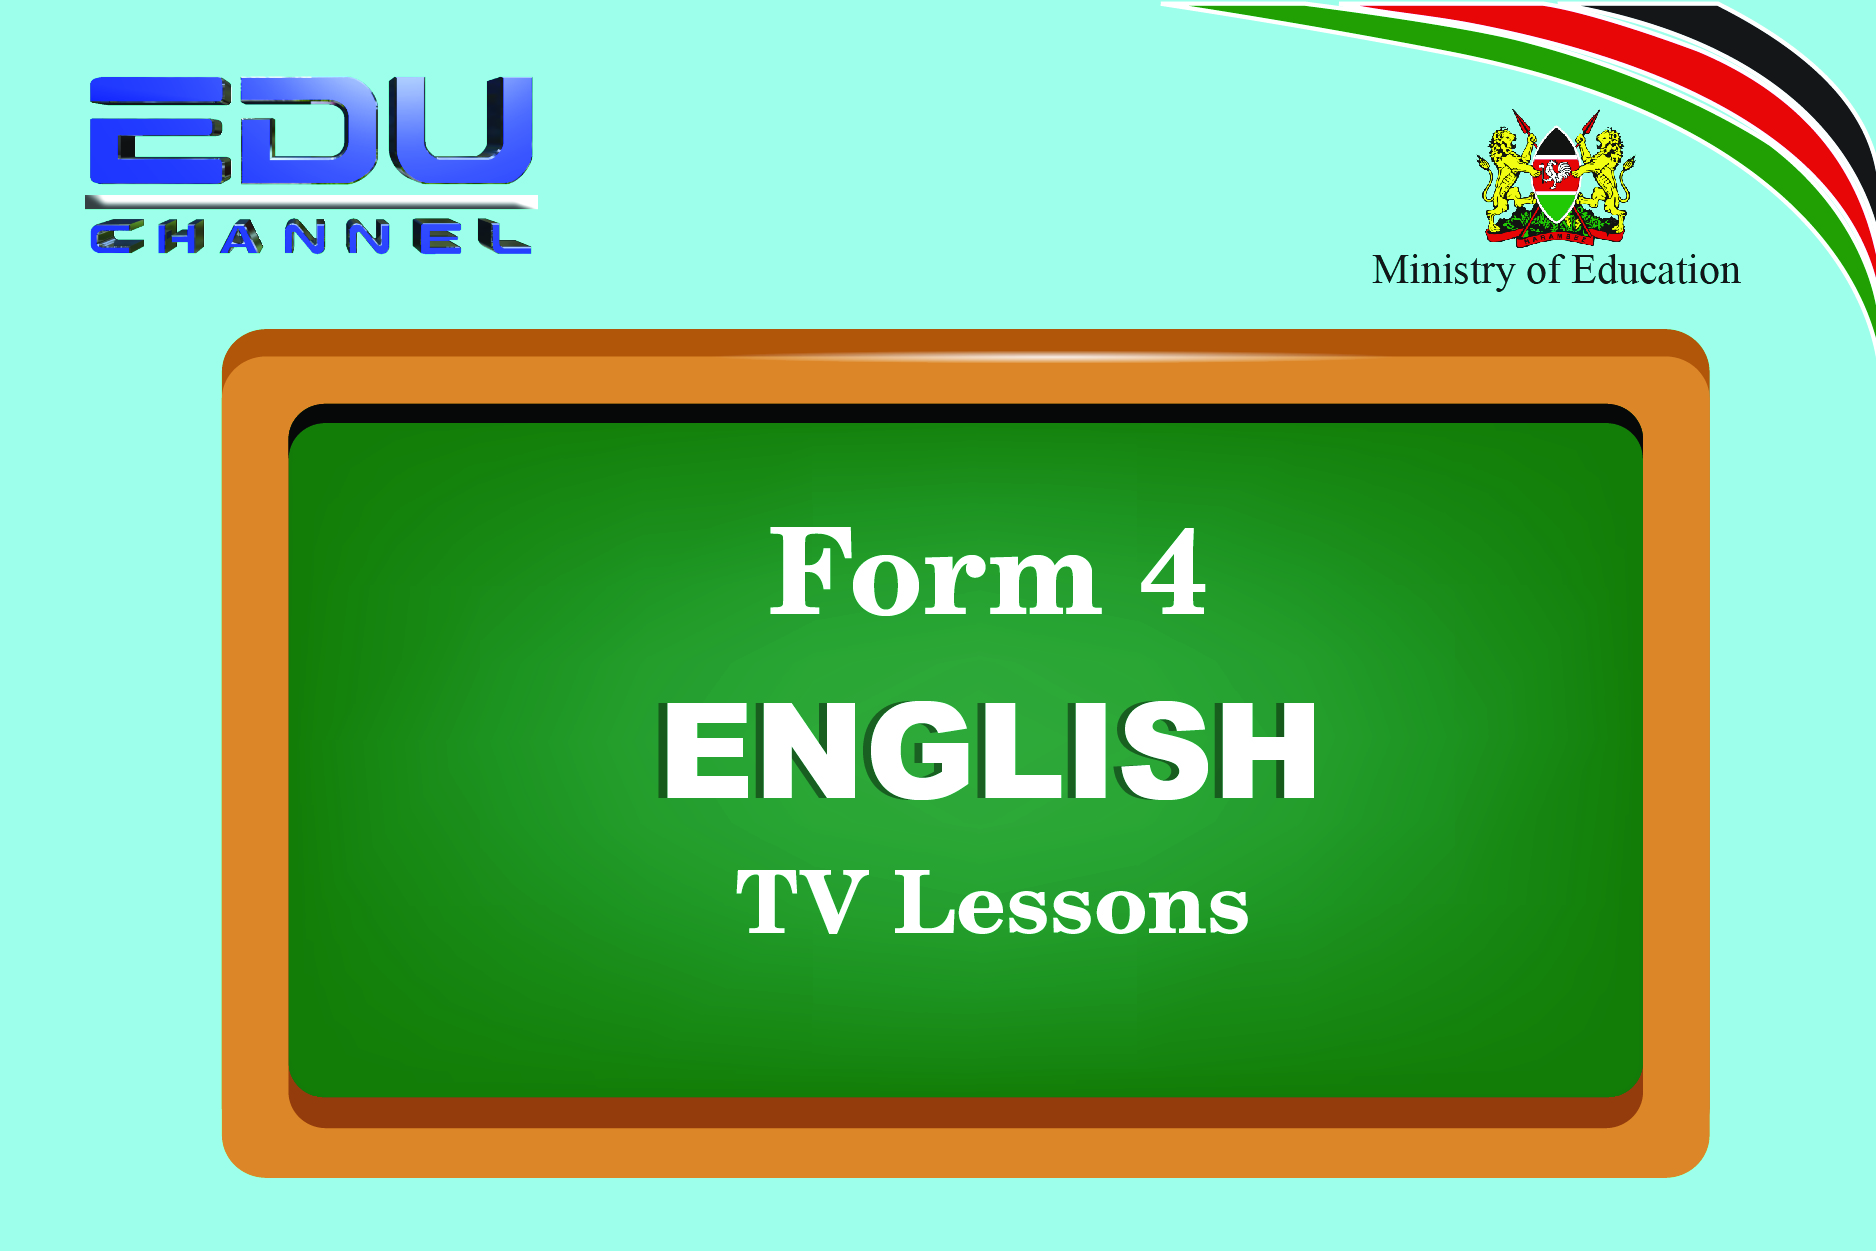 Form 4 English  Lesson 5: Effective communication -  Negotiation skills and turn taking